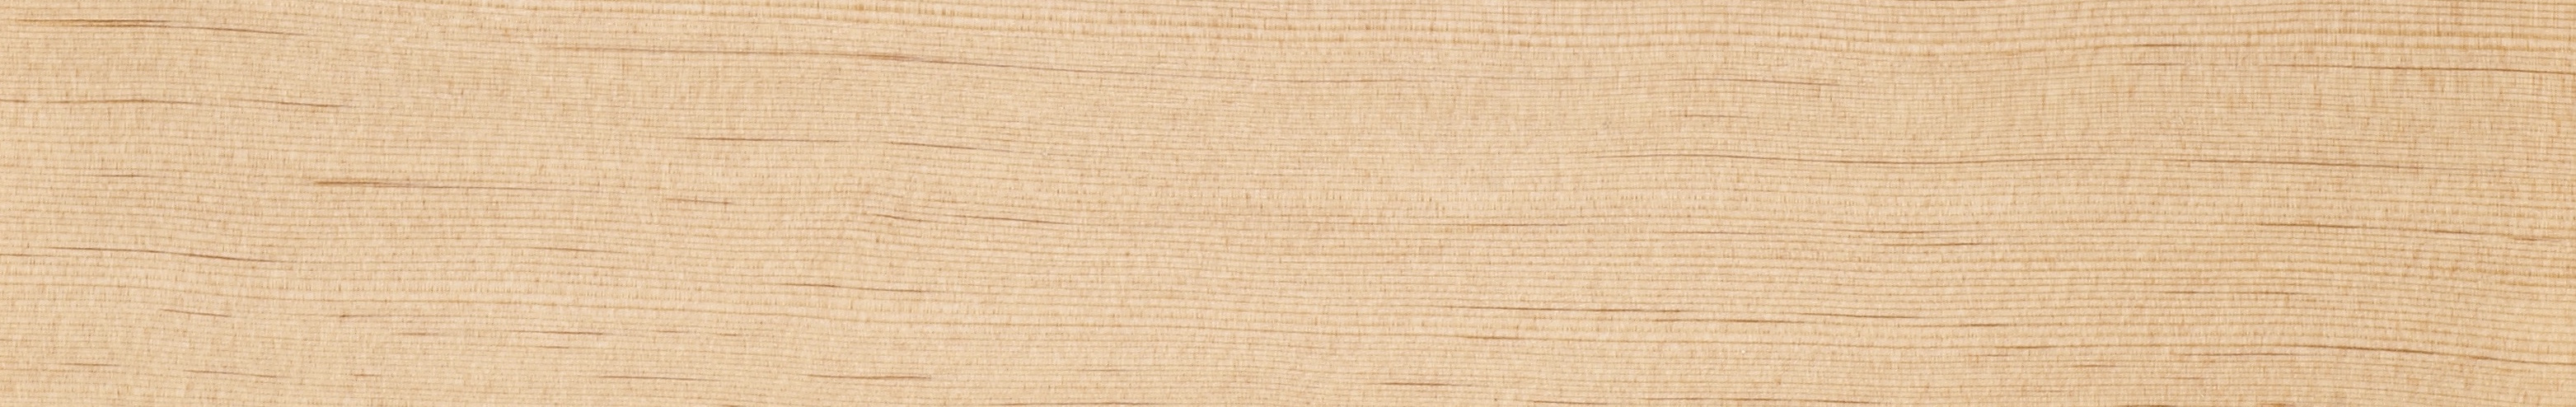 Image of woodgrain